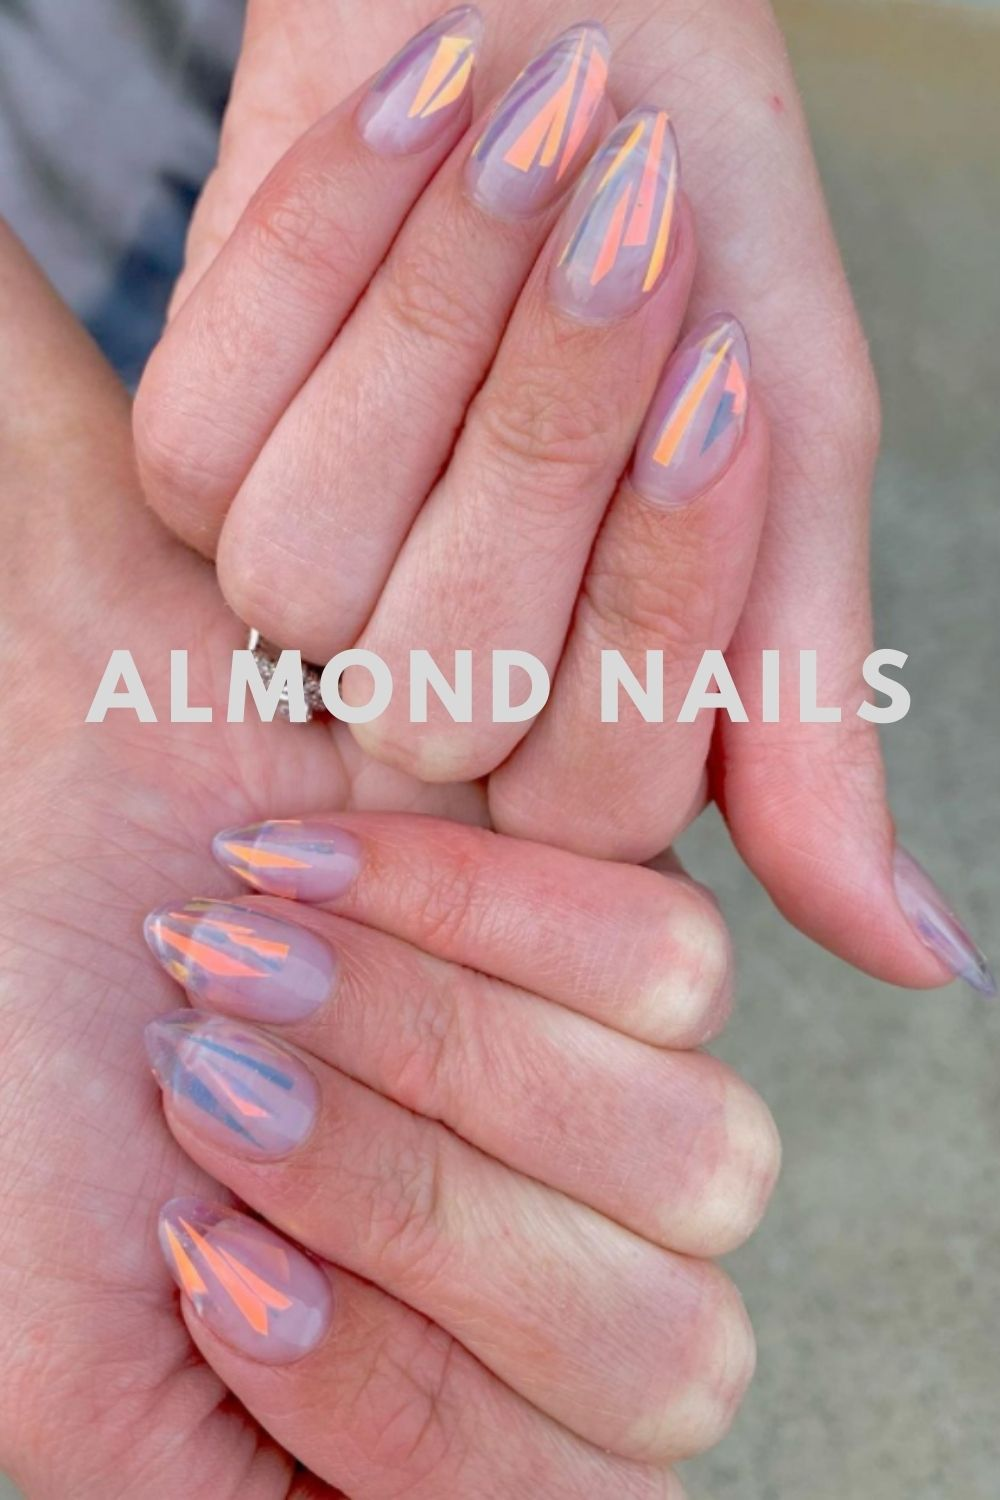 Almond-Shaped Nails Art for Autumn Nails 2021